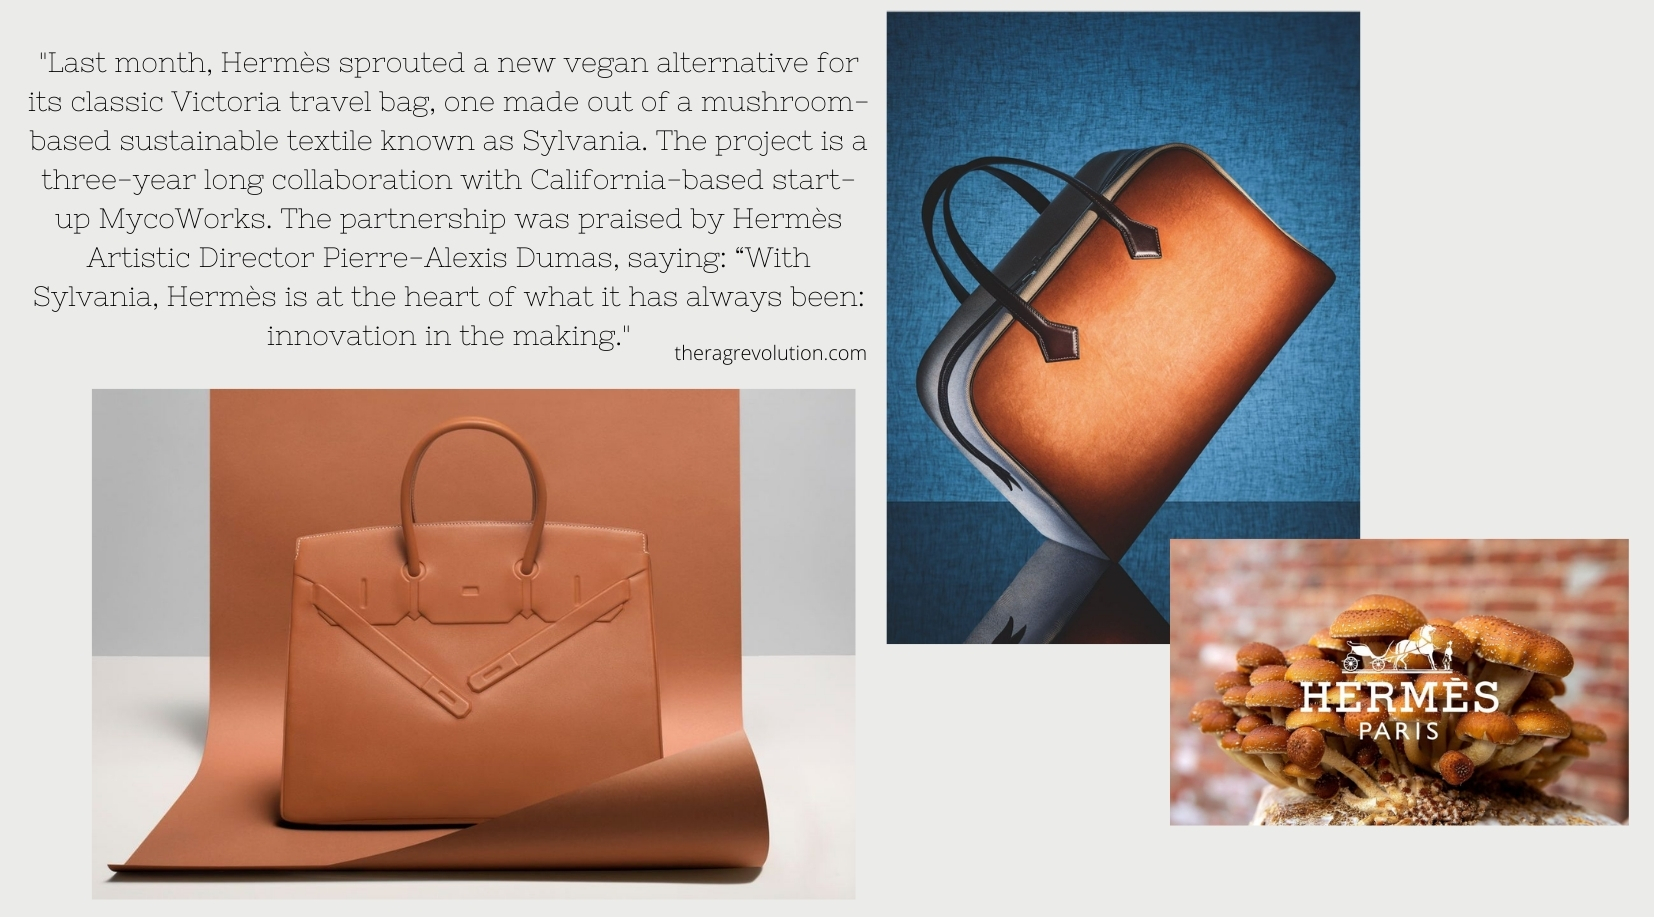 Hermés Victoria travel bag created from MycoWorks mushroom leather